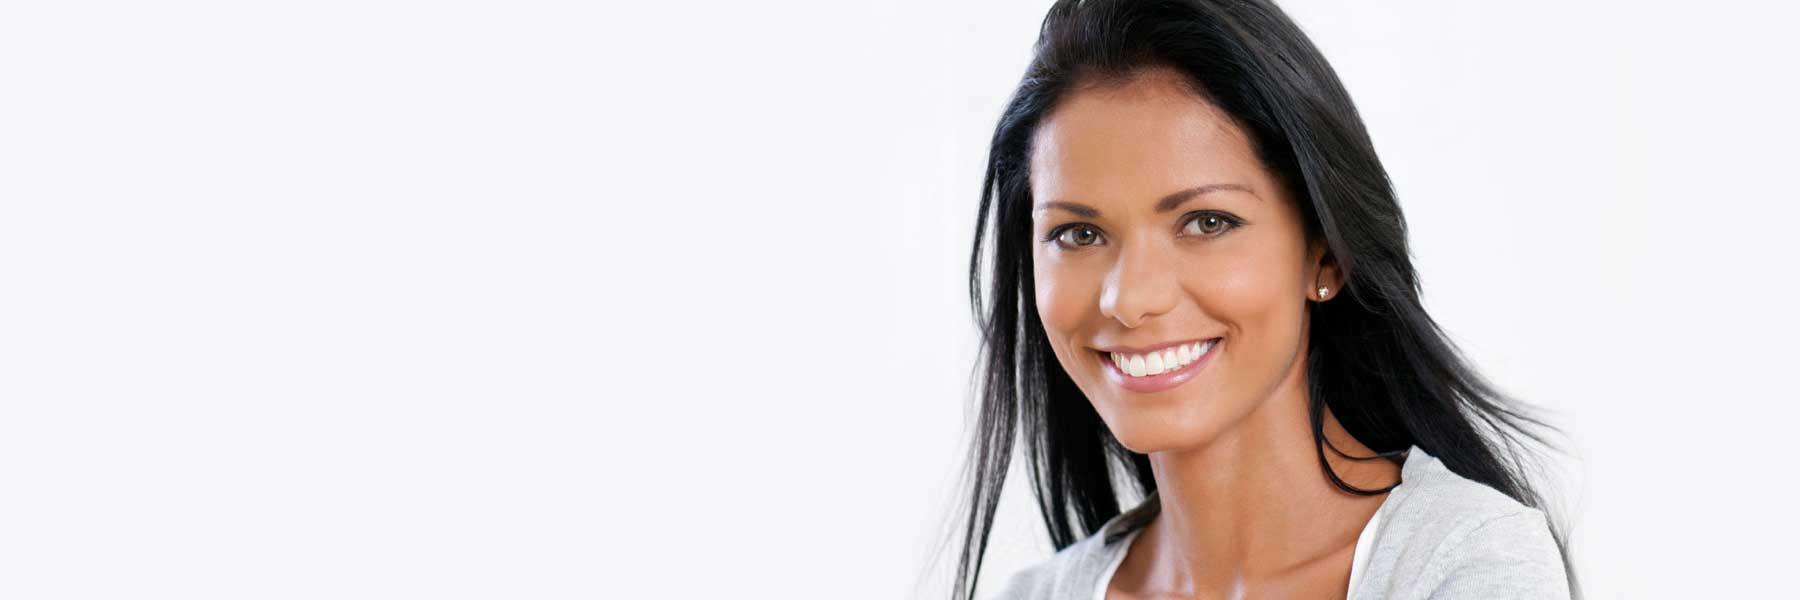 Dental Implants in Irvine, CA banner image